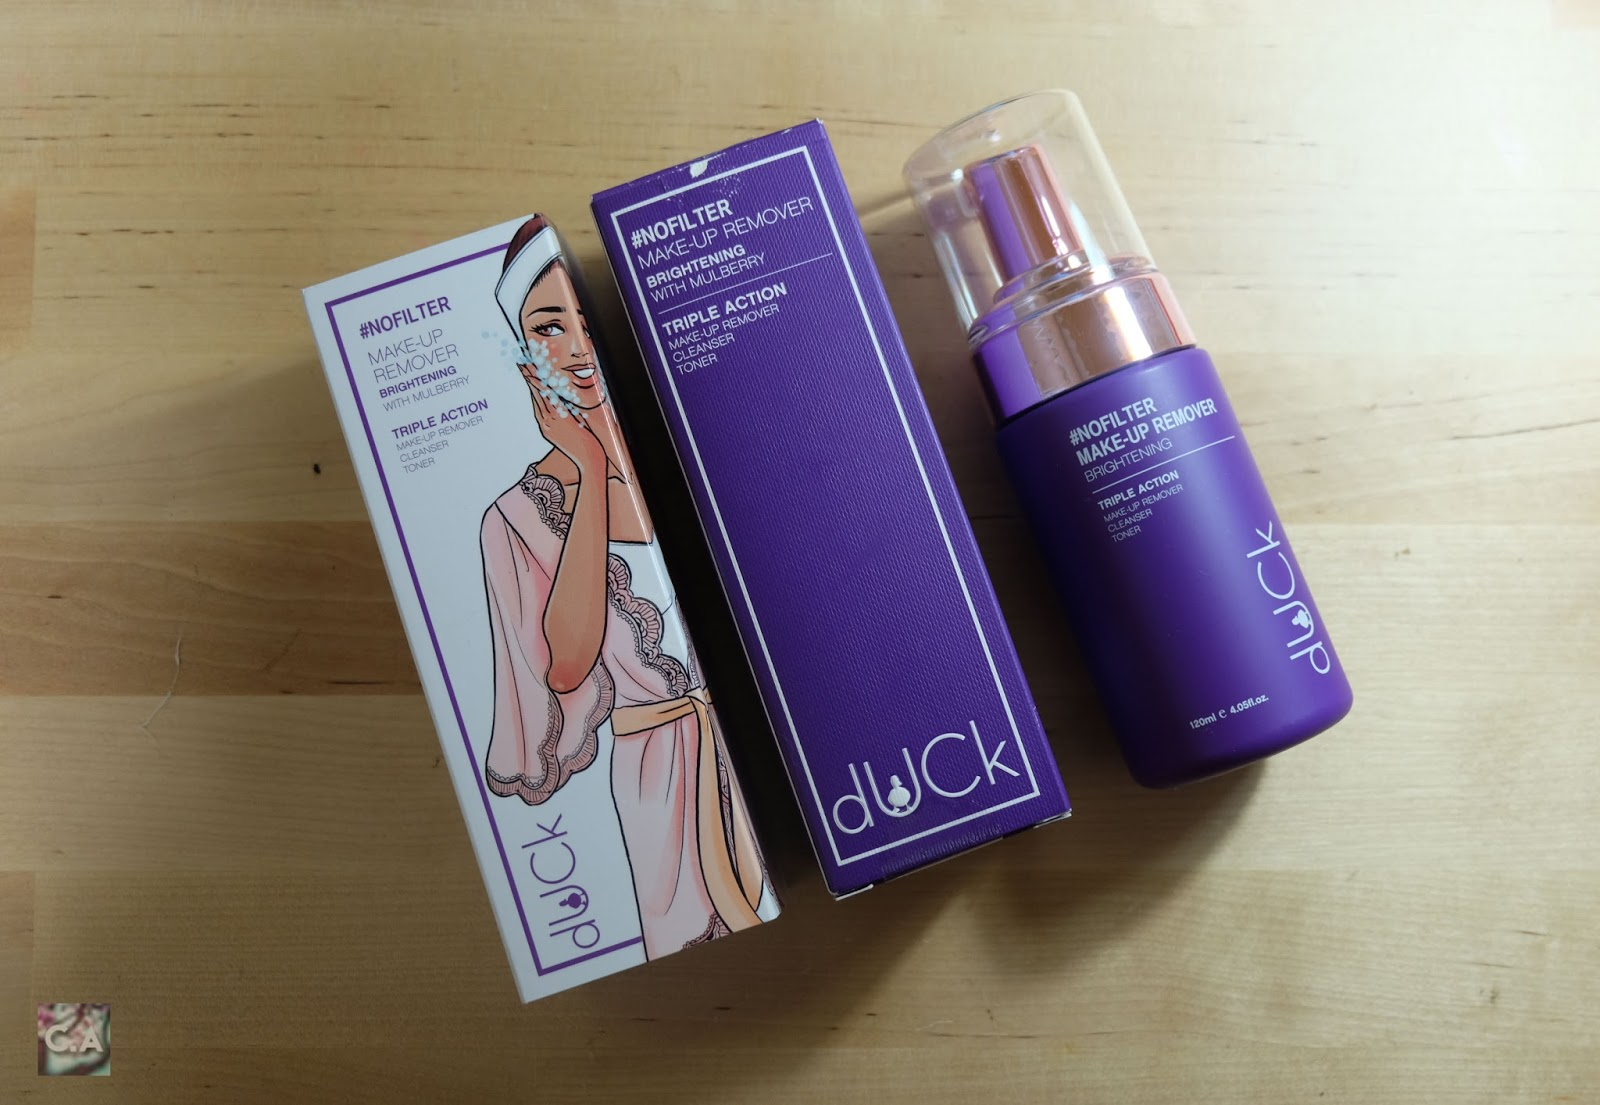 dUck Cosmetics #nofilter Make-up Remover - Brightening Curitan Aqalili